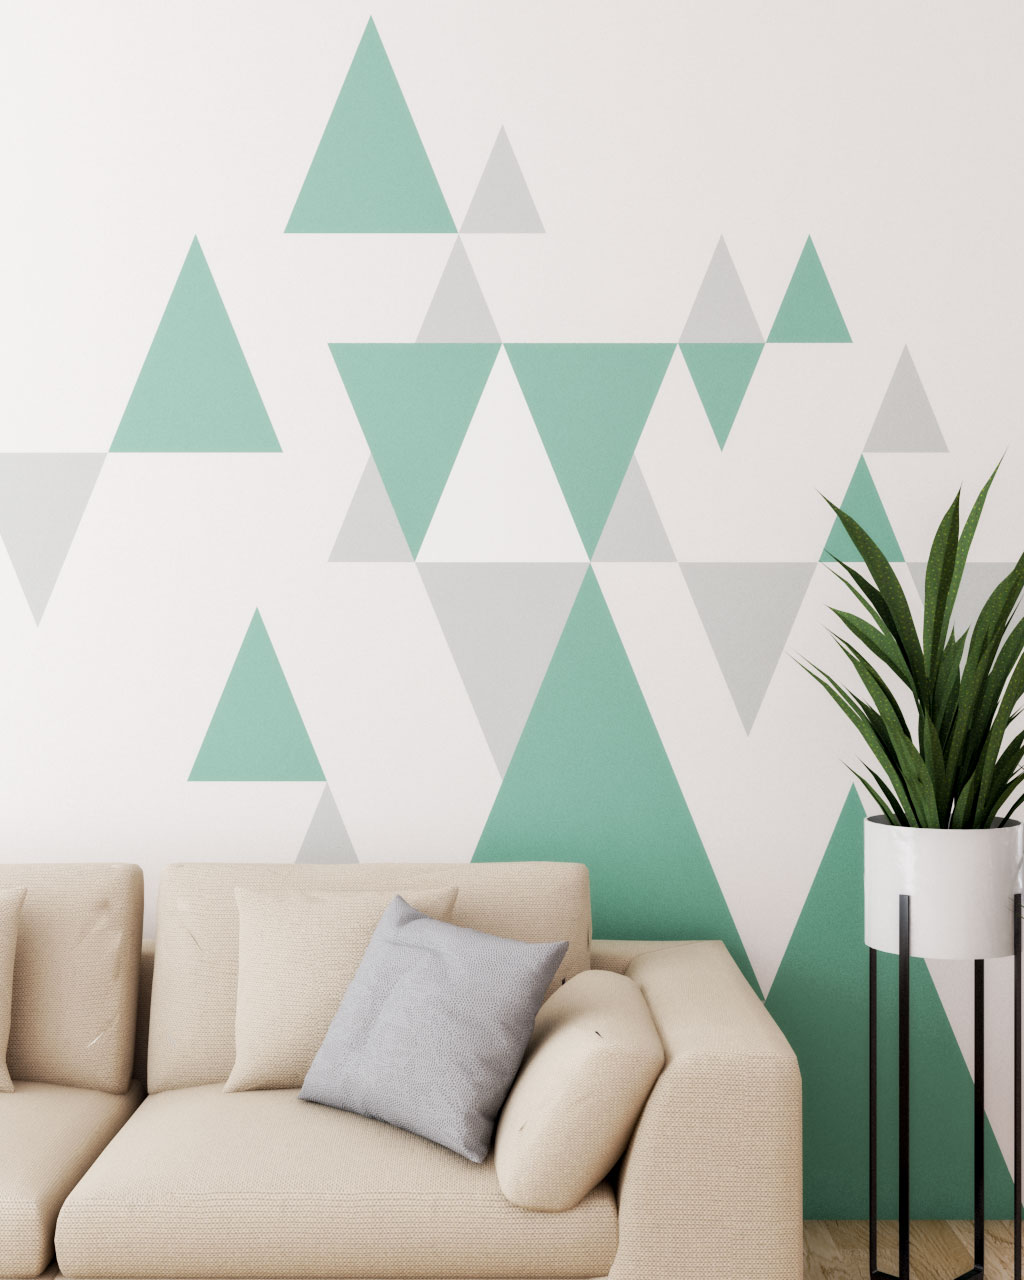 Triangle style wall paint ideas green, gray and white